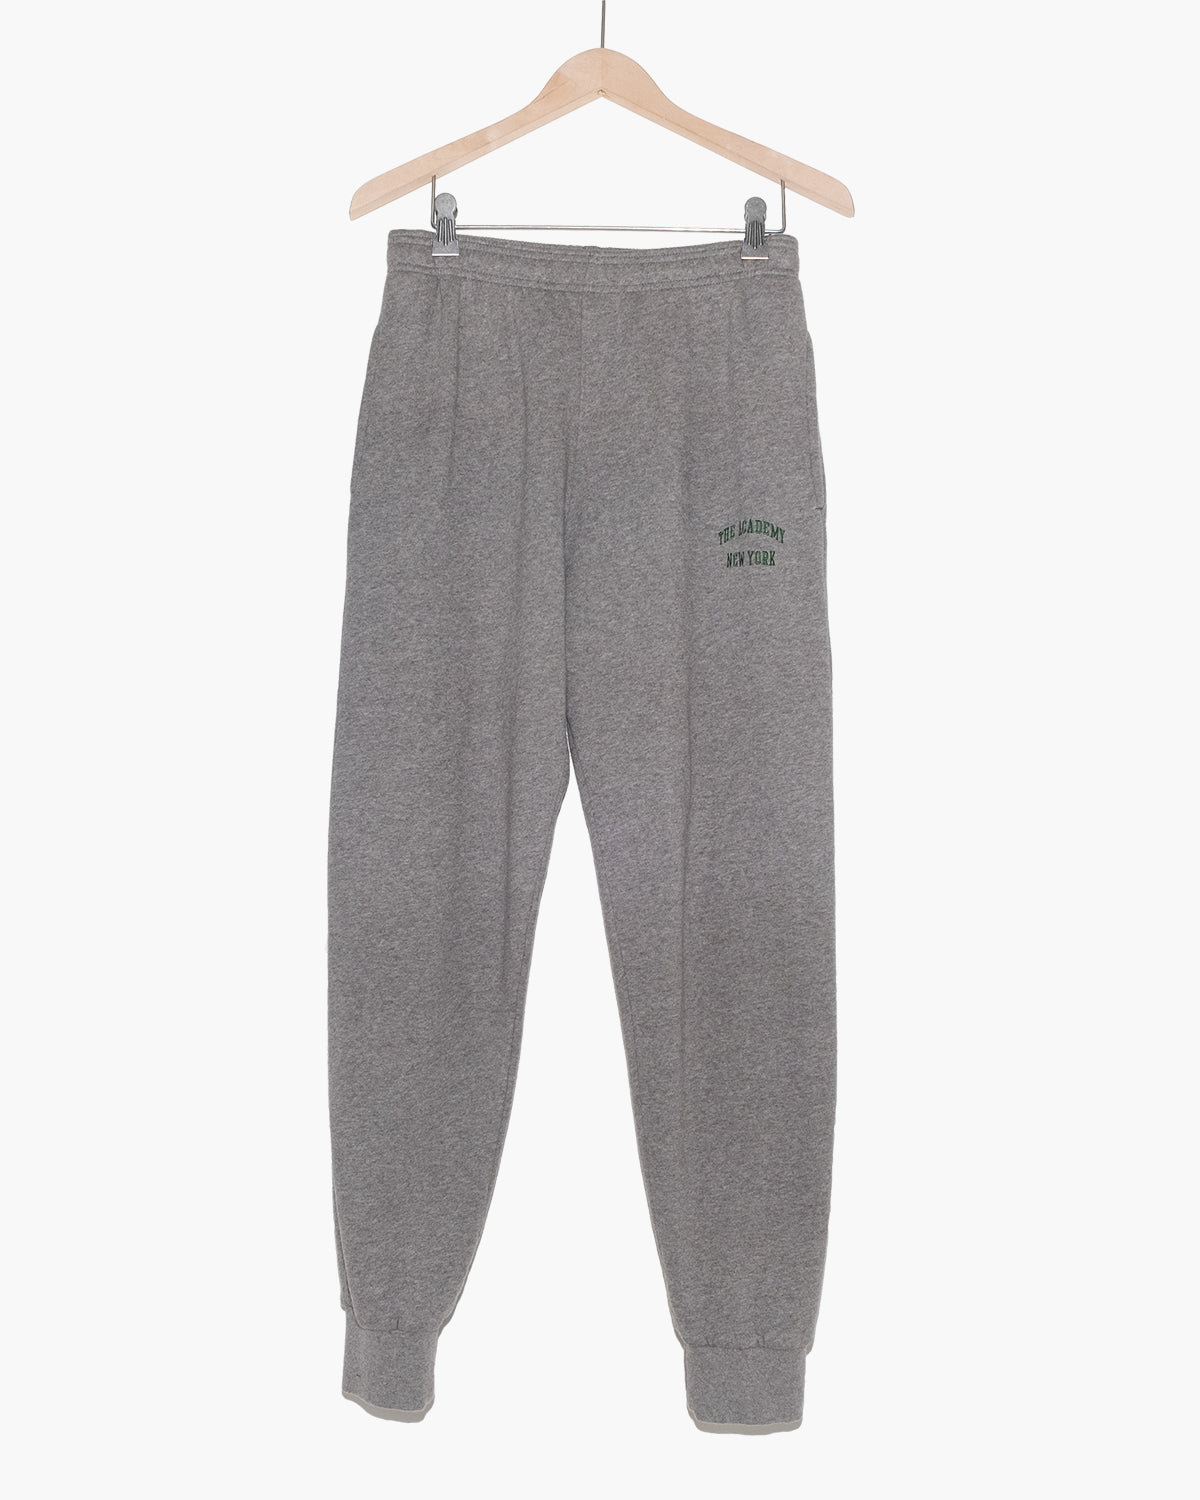 The Academy New York Logo Sweatpants